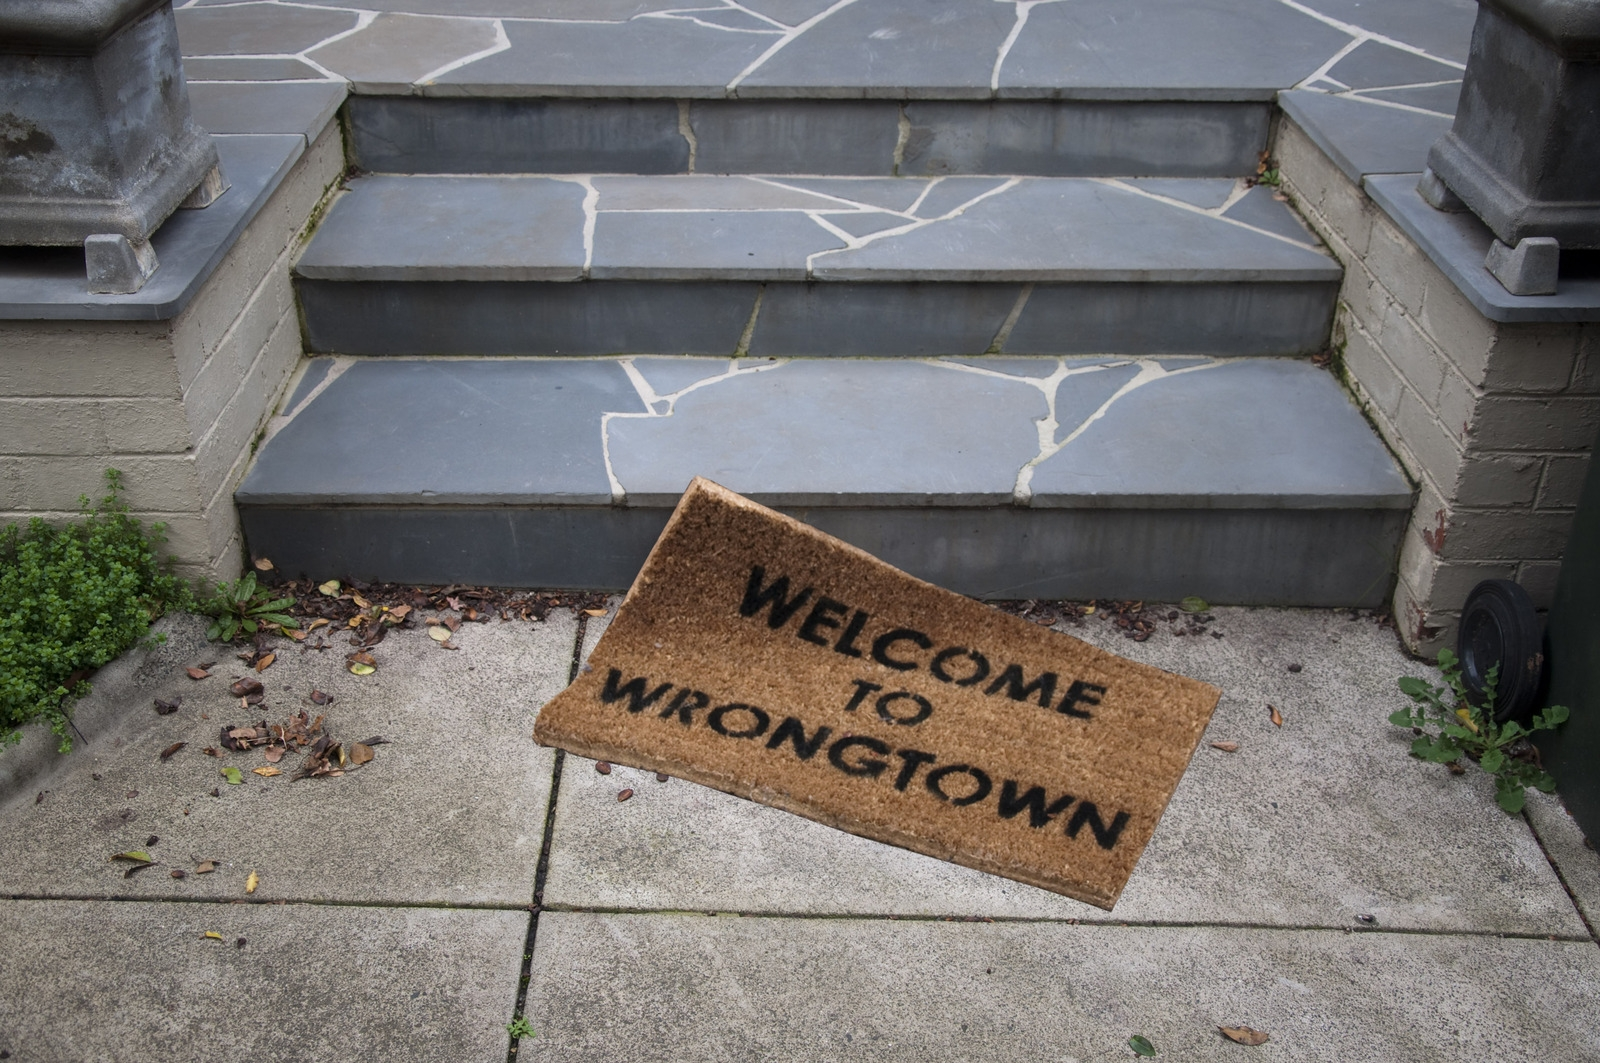 Rendezvous in Wrongtown image